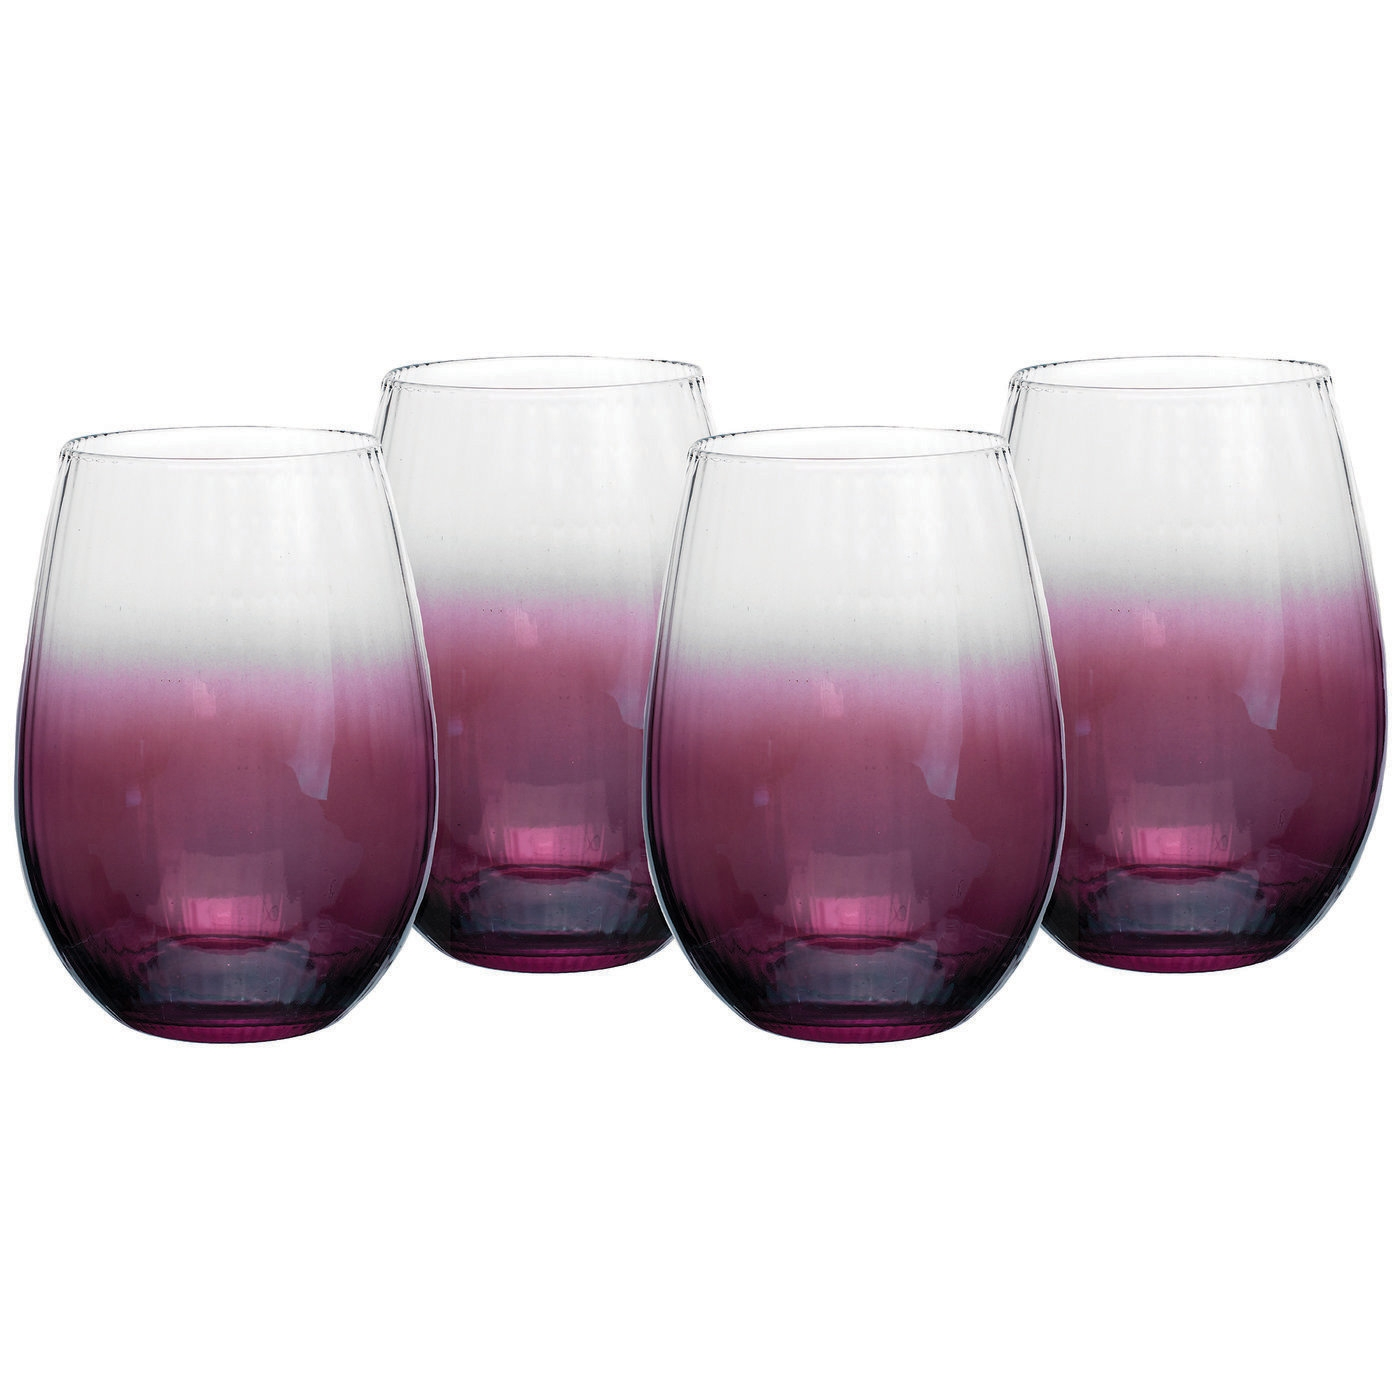 Spode Kingsley Stemless Wine Glass Set of 4 image number 0